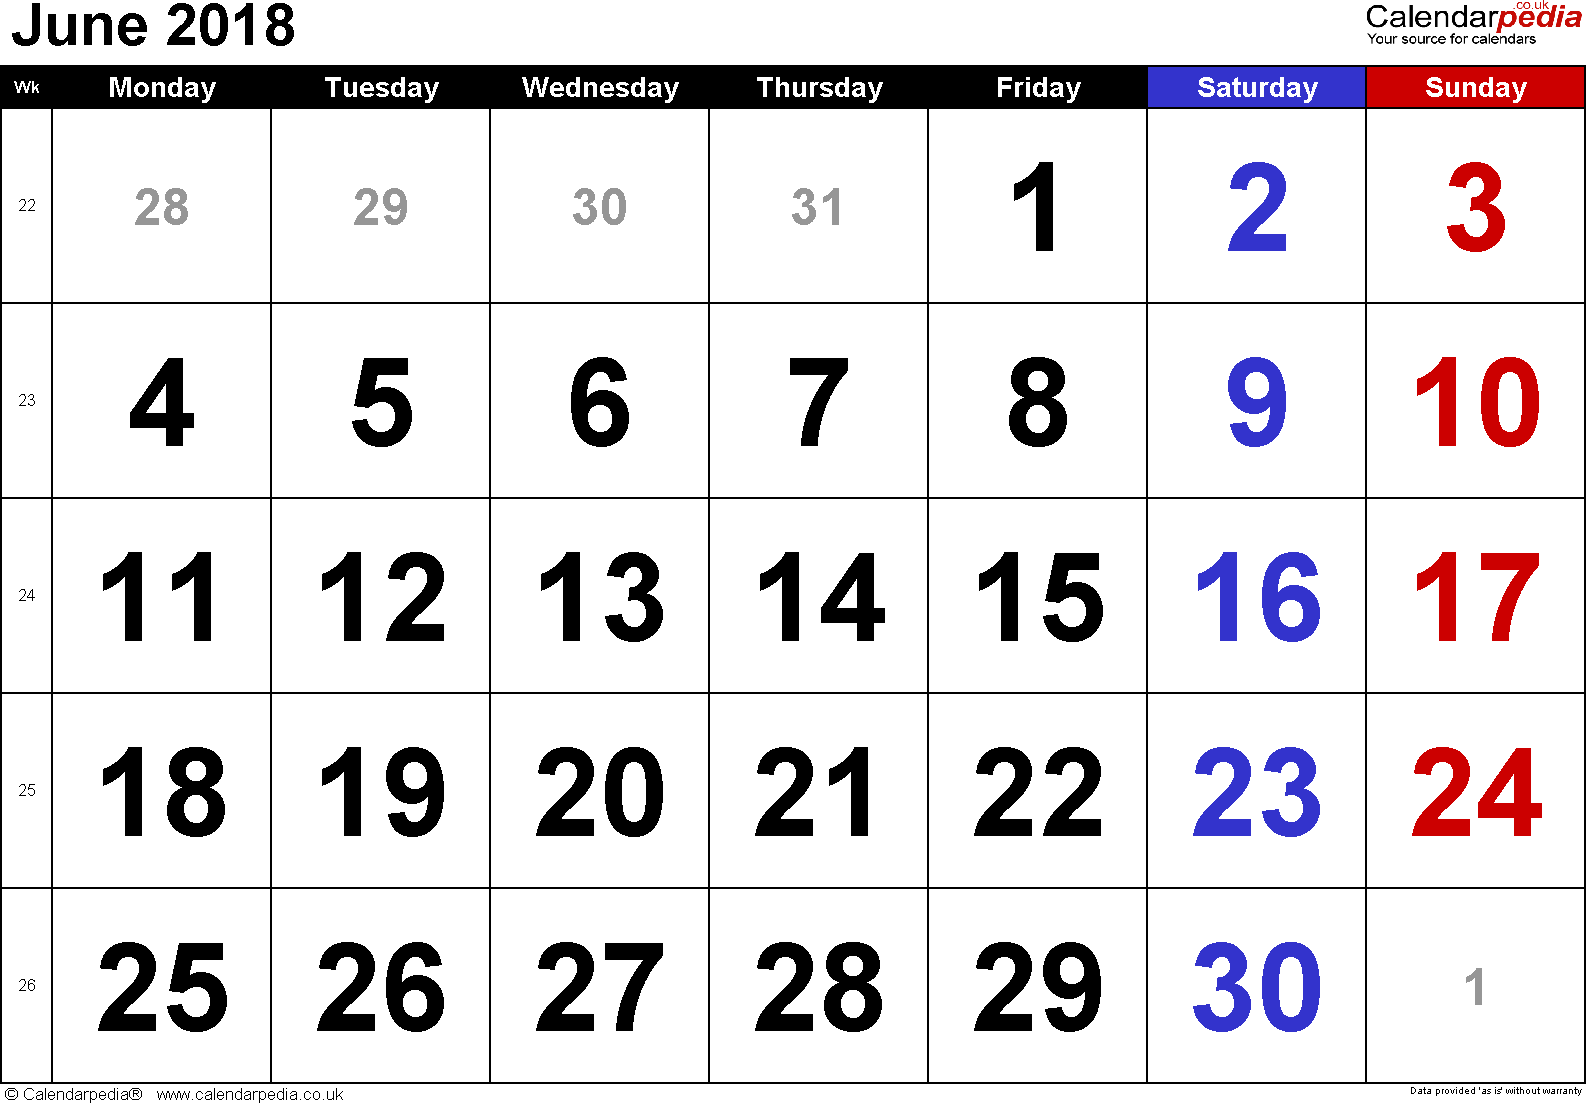 Calendar June 2018, landscape orientation, large numerals, 1 page, with UK bank holidays and week numbers